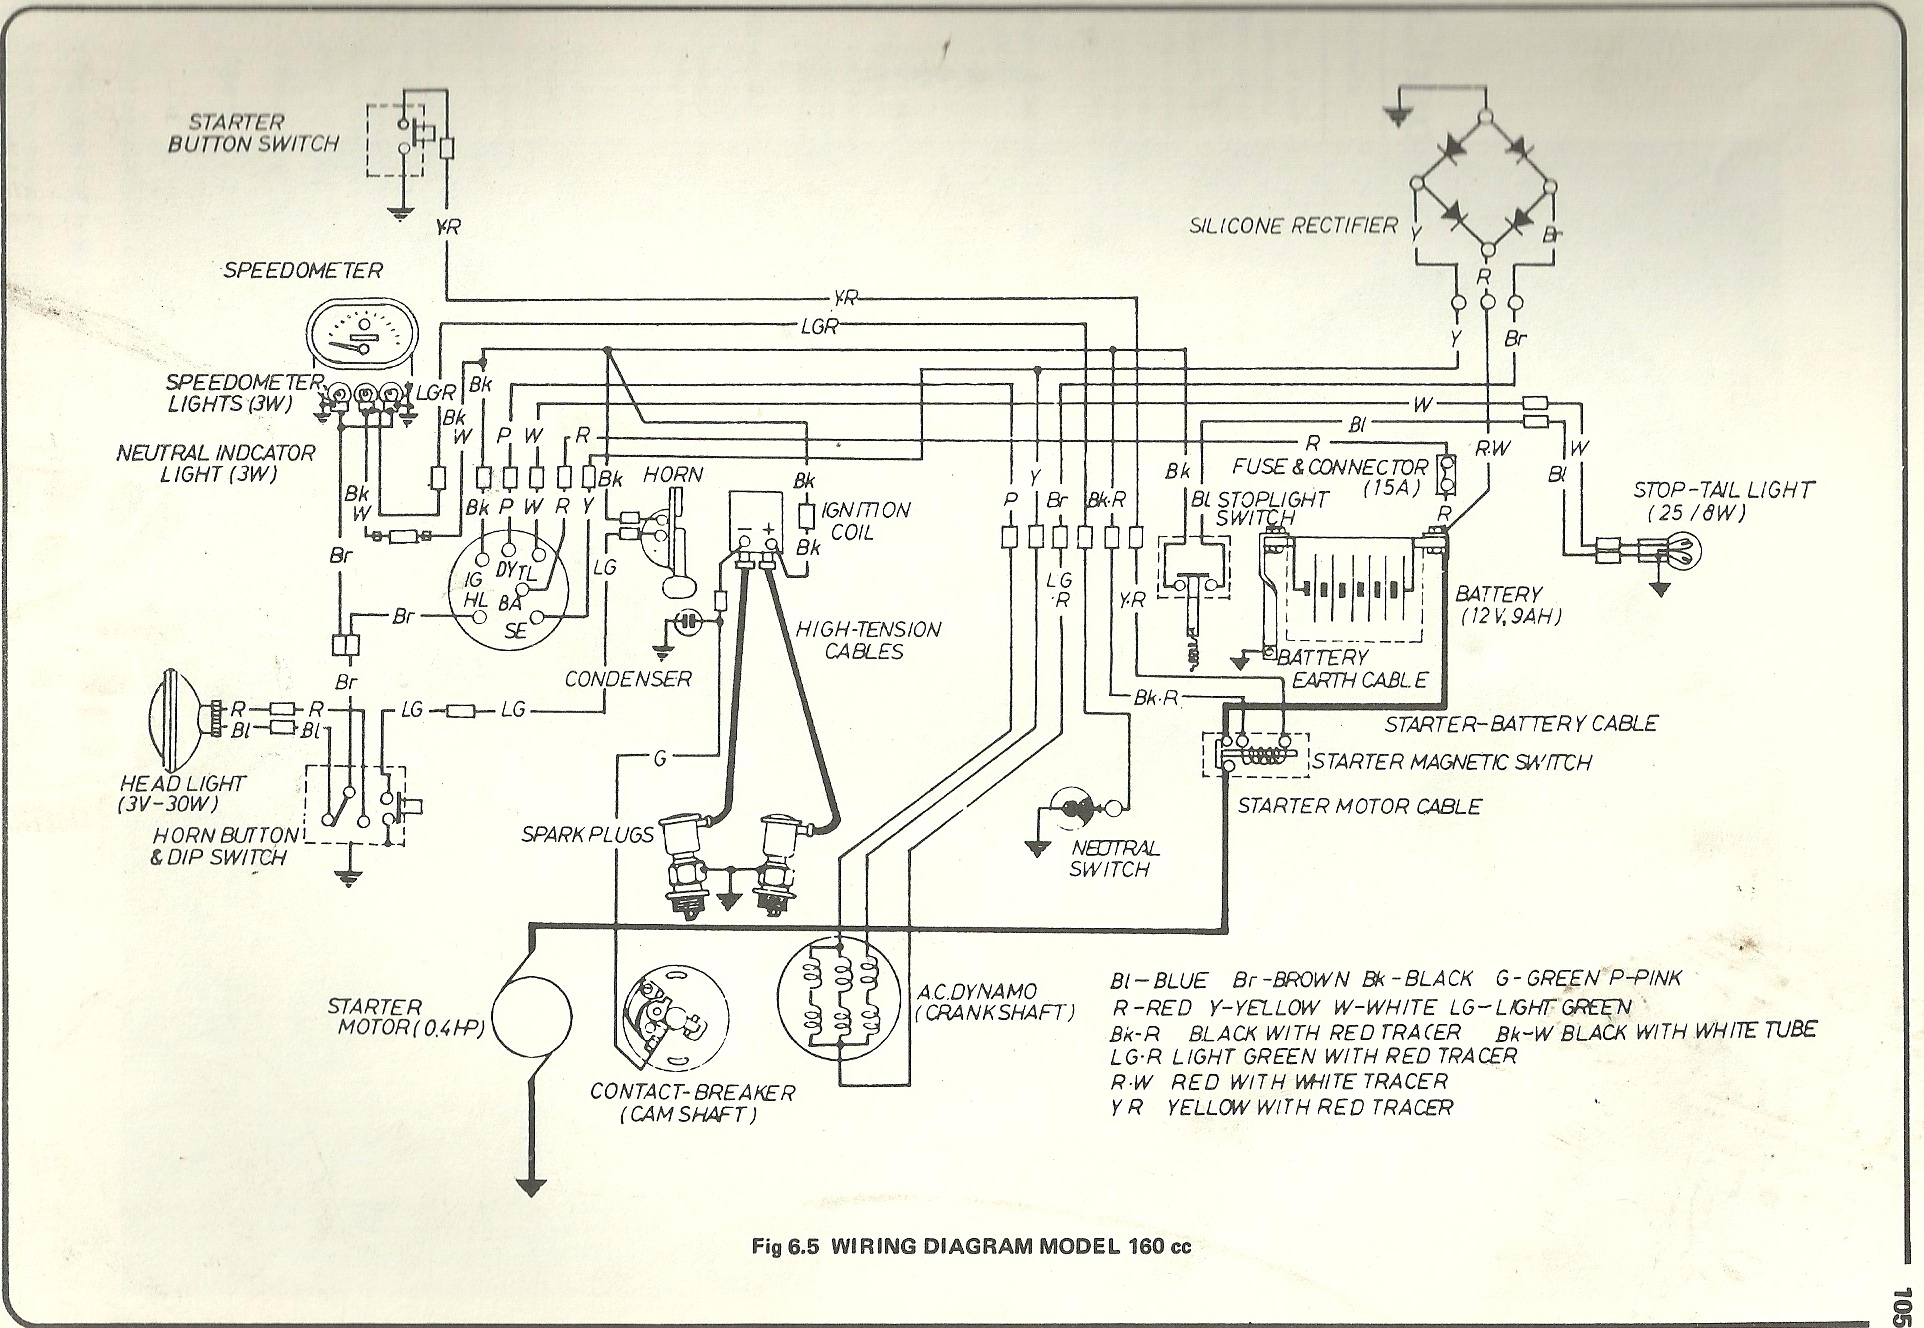 CB1602 wiring diagrams 1974 honda ct90 wiring diagram at mifinder.co